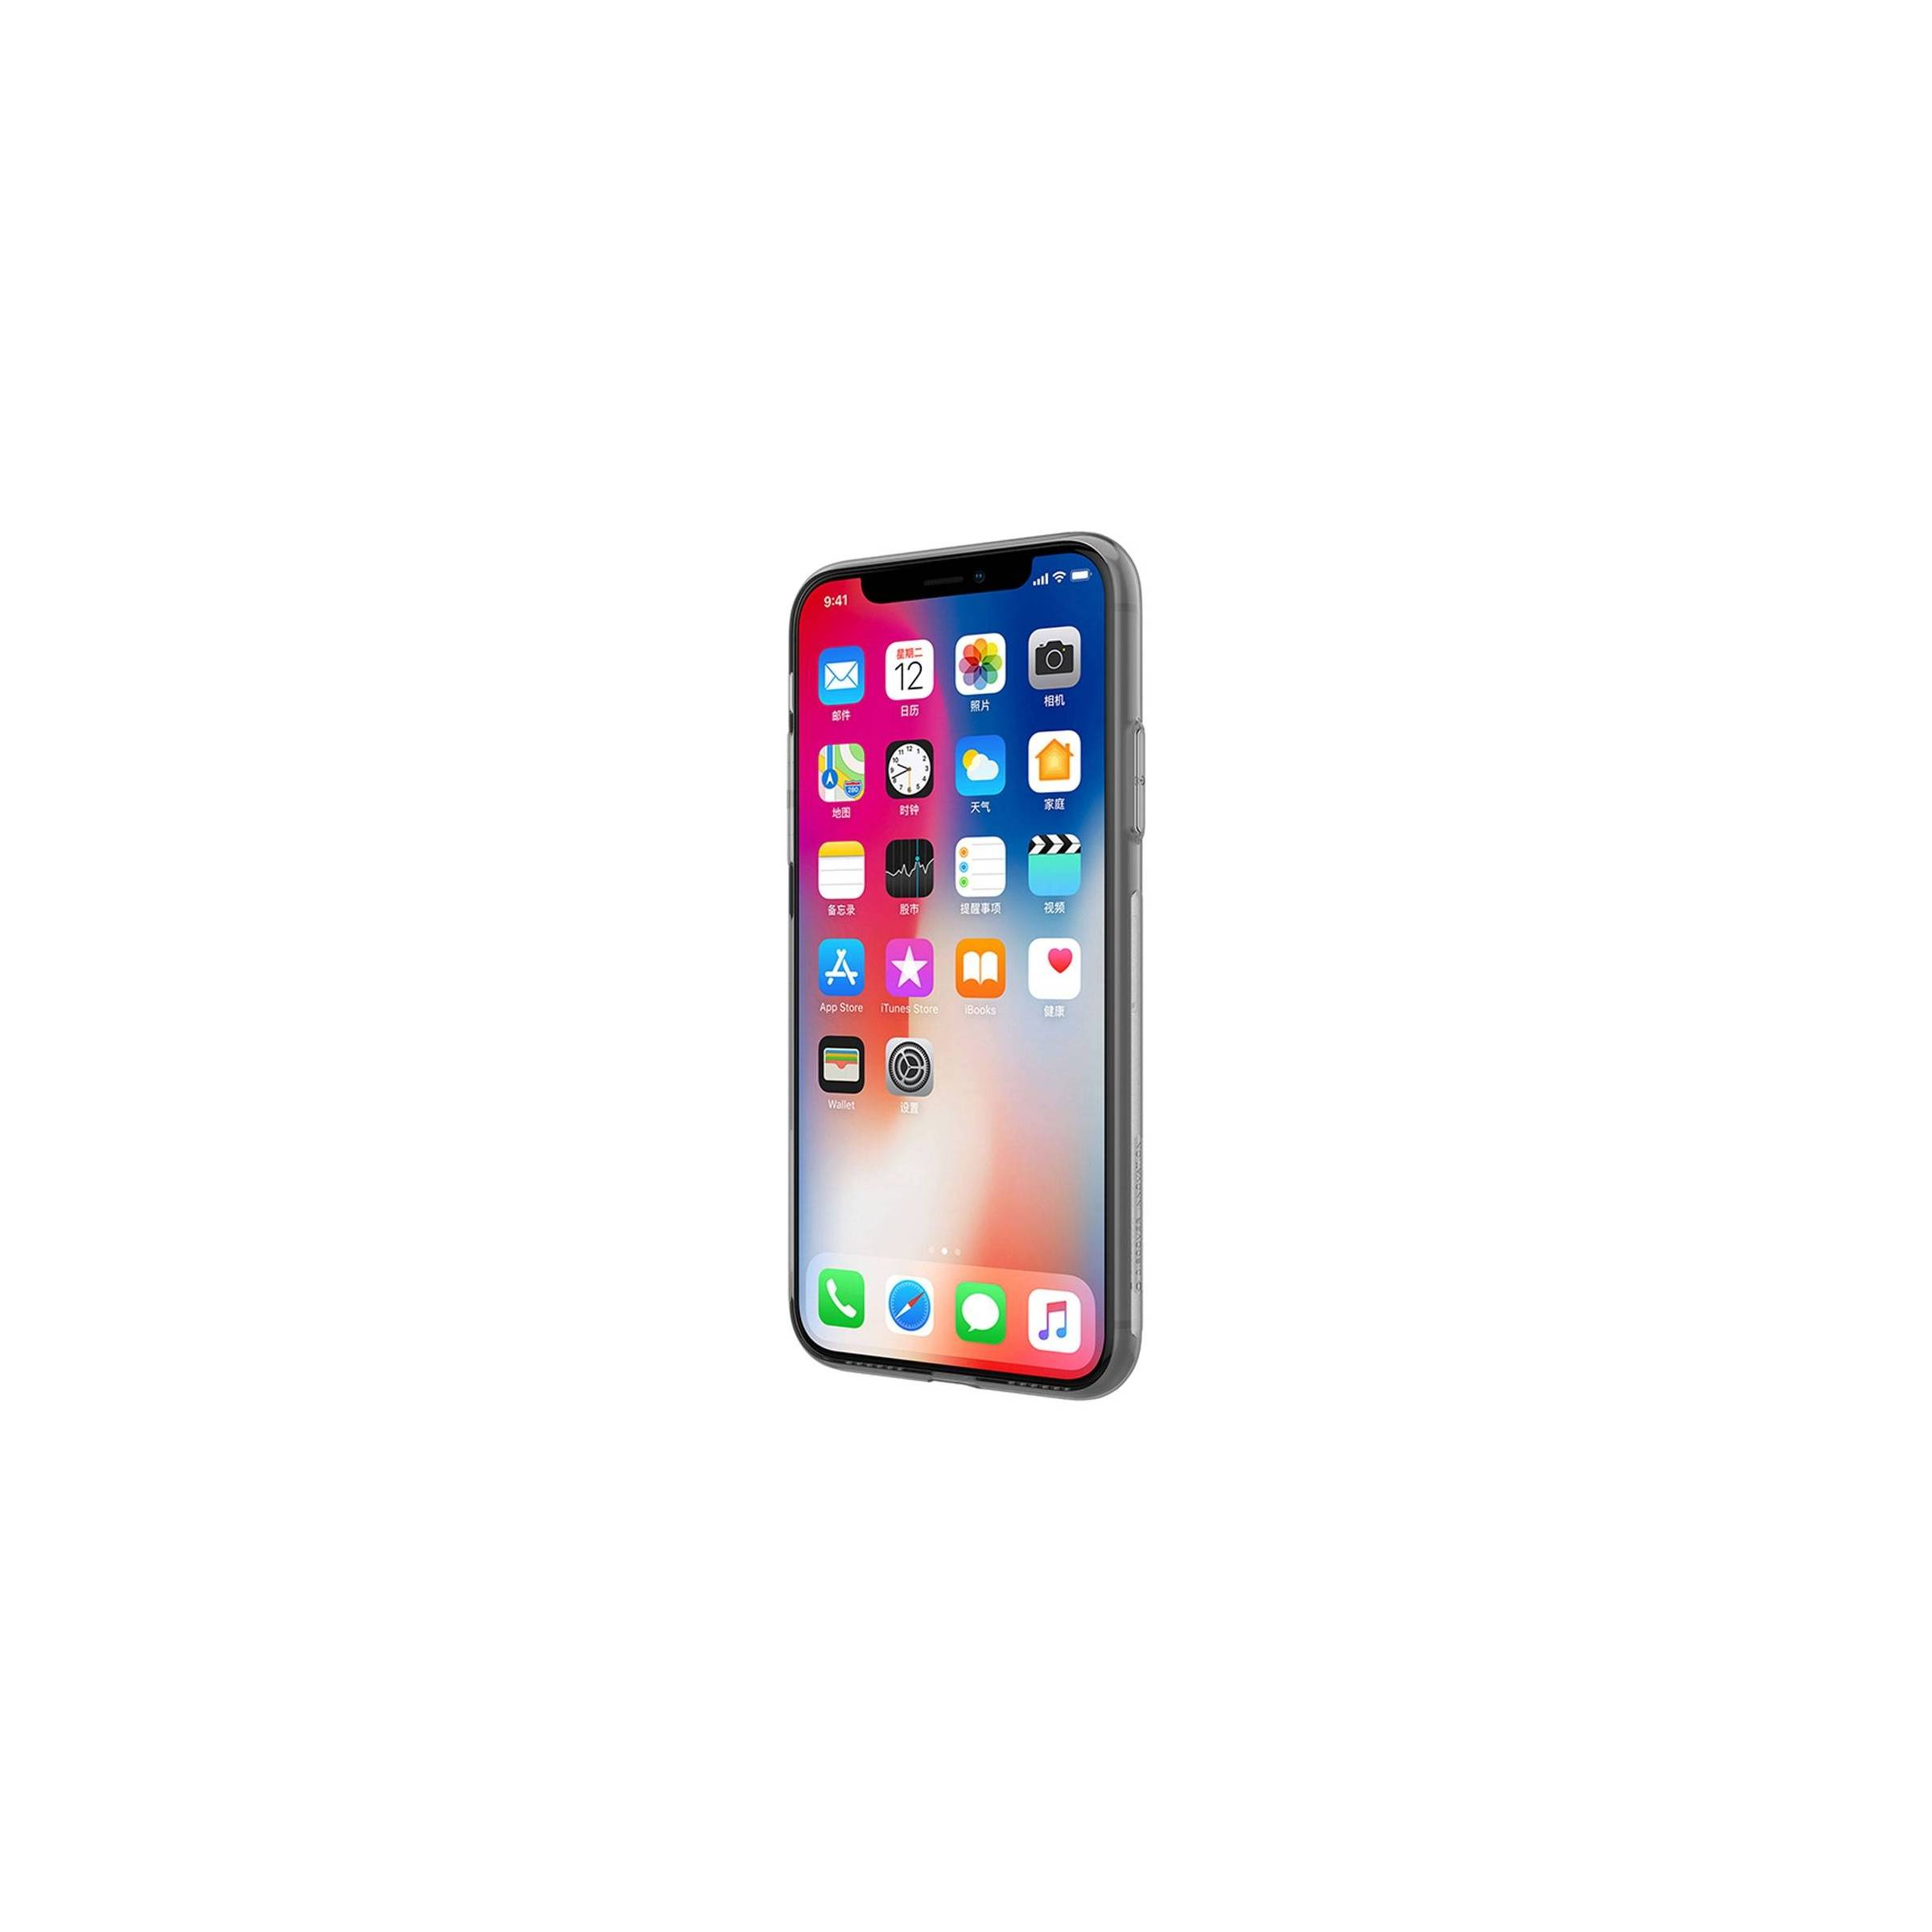 Iphone xs/x/xr/xs max silikone tyndt cover fra nillkin iphone iphone x (10) / xs fra nillkin fra mackabler.dk